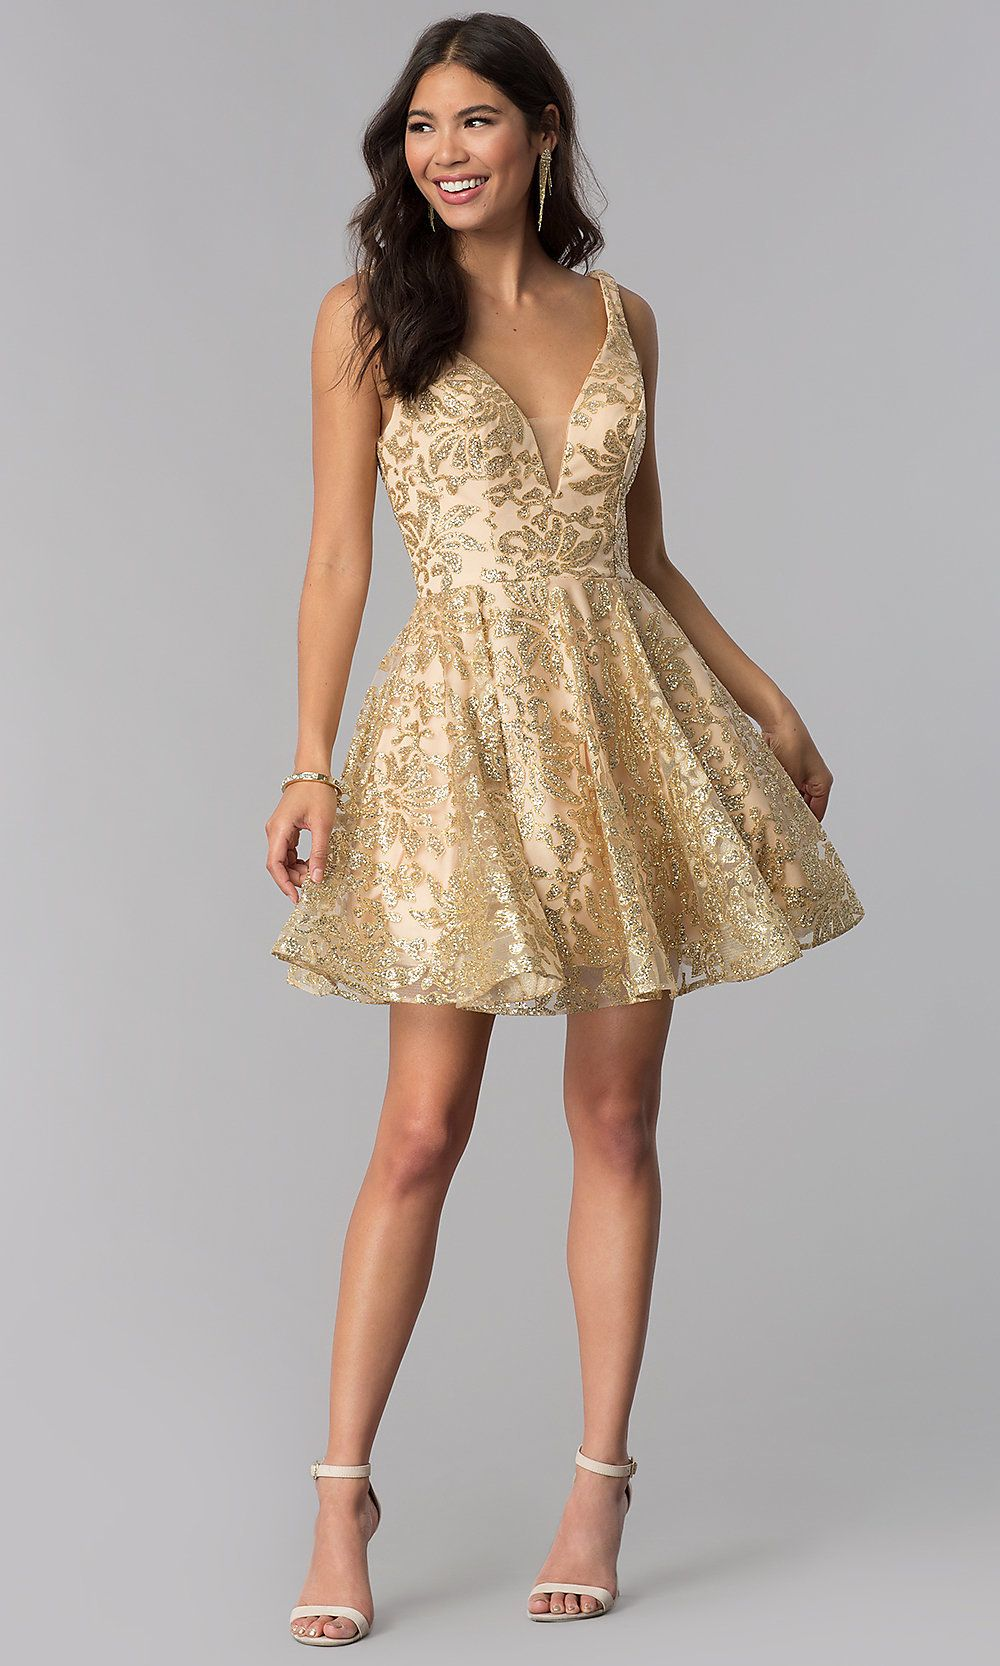 19+ Gold sparkly dress ideas in 2021